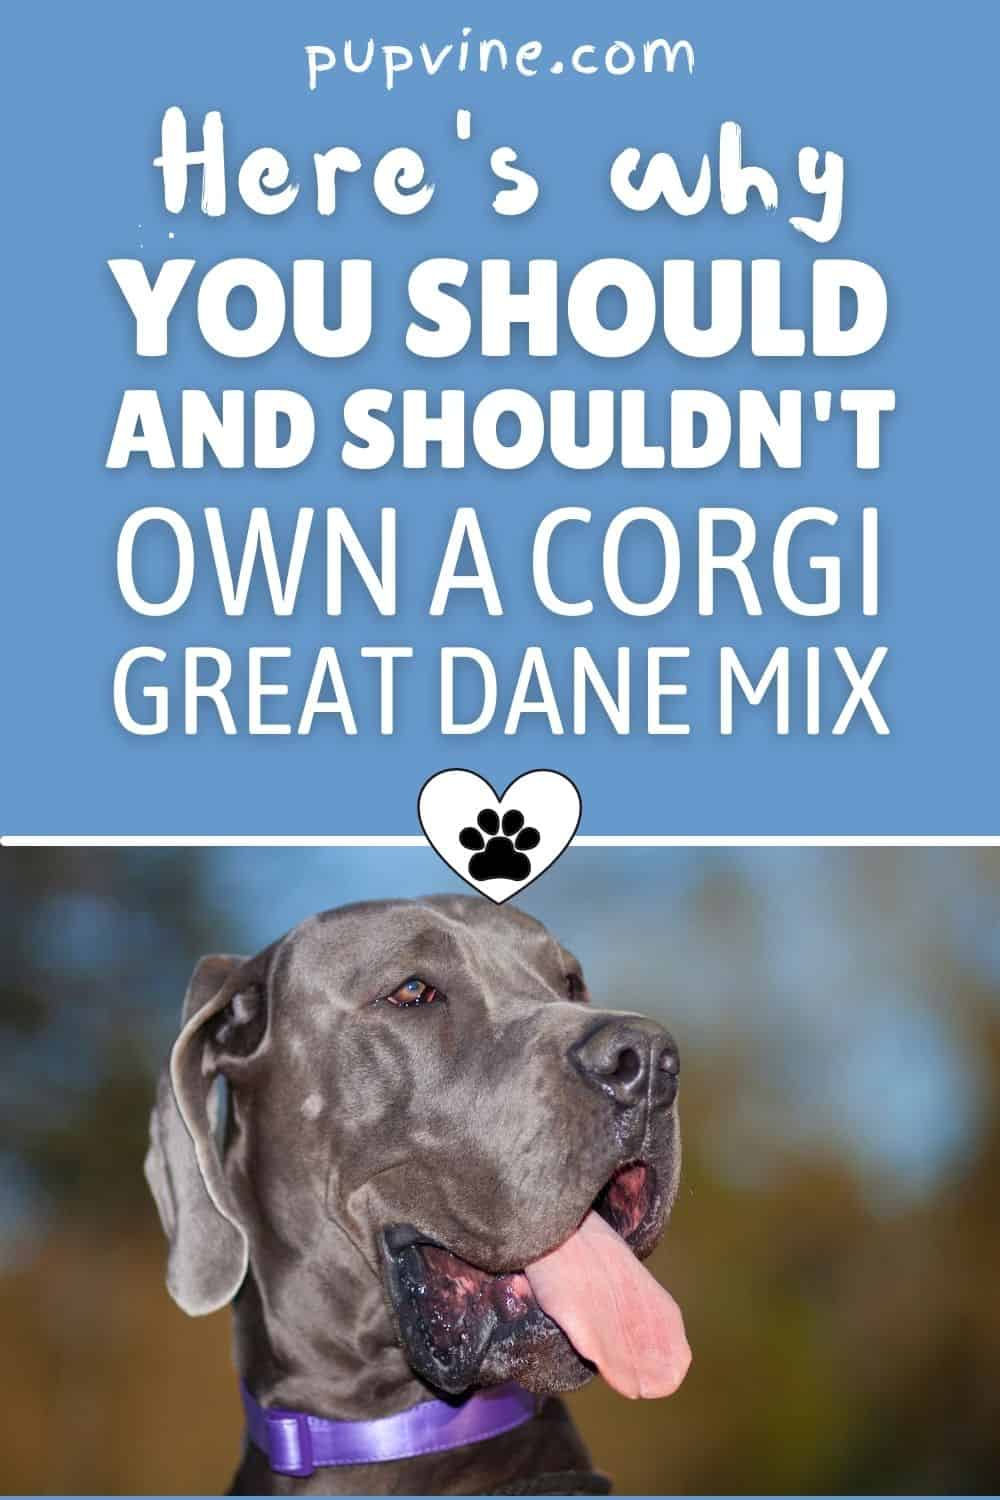 Here's Why You Should And Shouldn't Own A Corgi Great Dane Mix